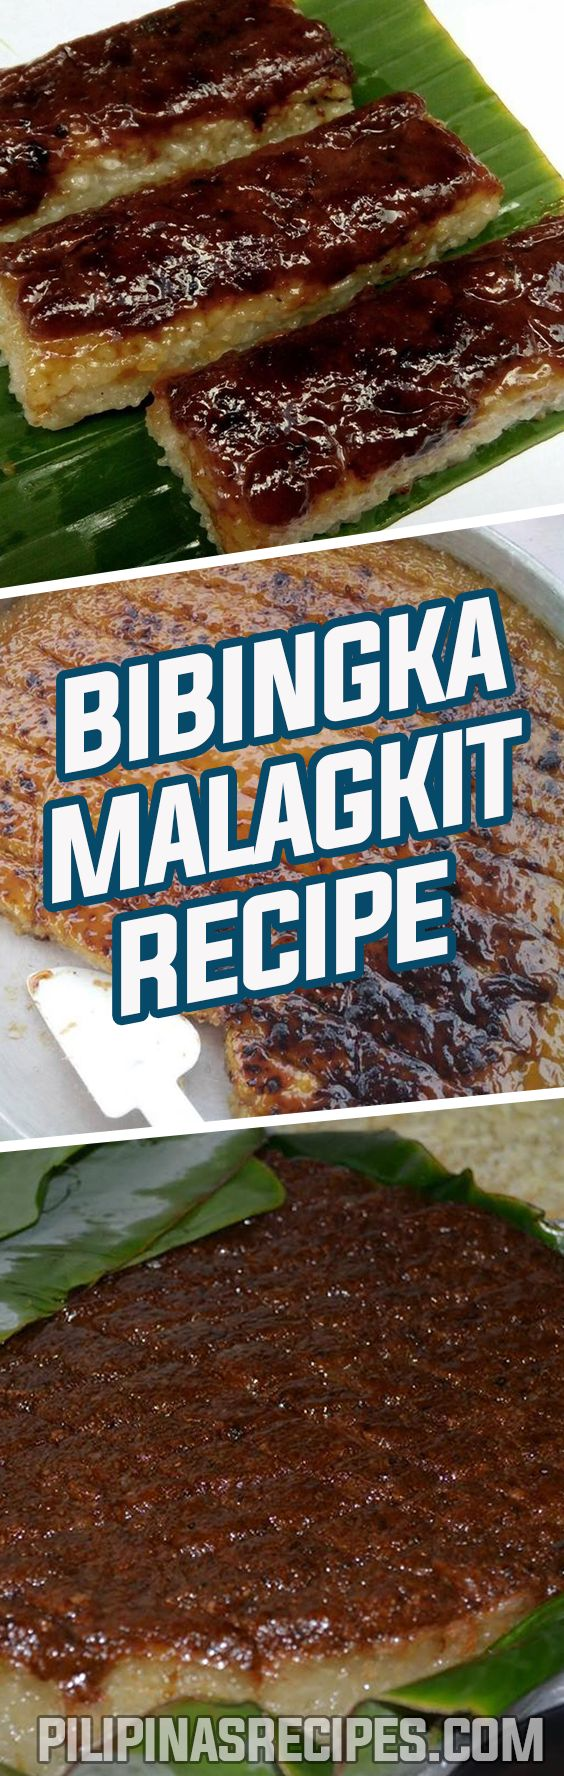 This Bibingka Malagkit Recipe is a type of Filipino Sweet Cake made of Glutinous Rice and commonly be seen near Churches during Simbang Gabi.